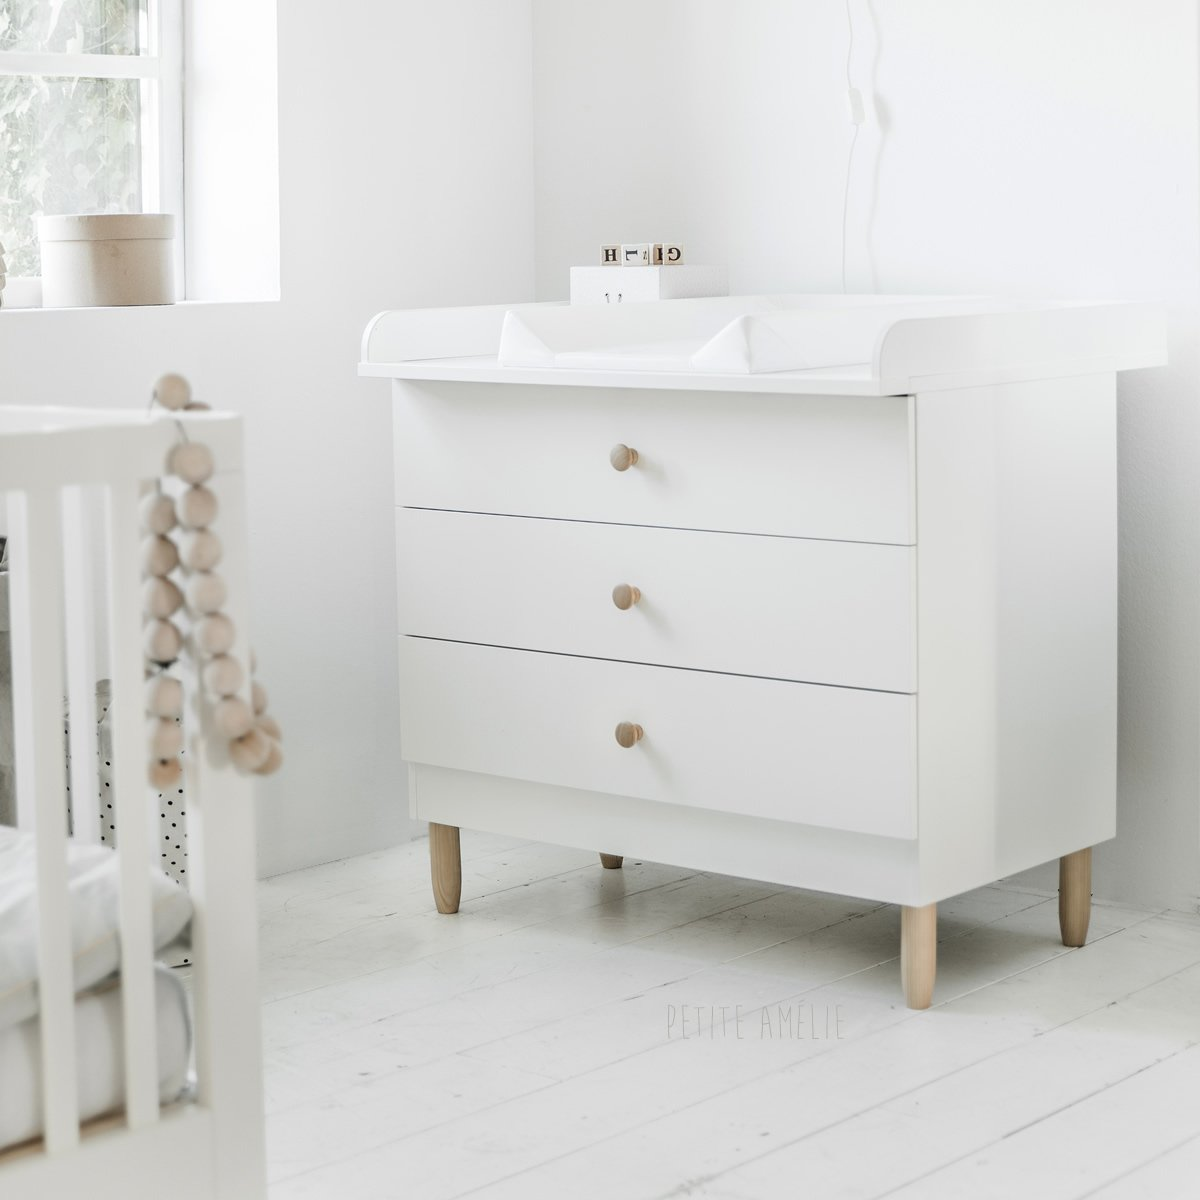 commode baby wit bocca by petite am lie. Black Bedroom Furniture Sets. Home Design Ideas